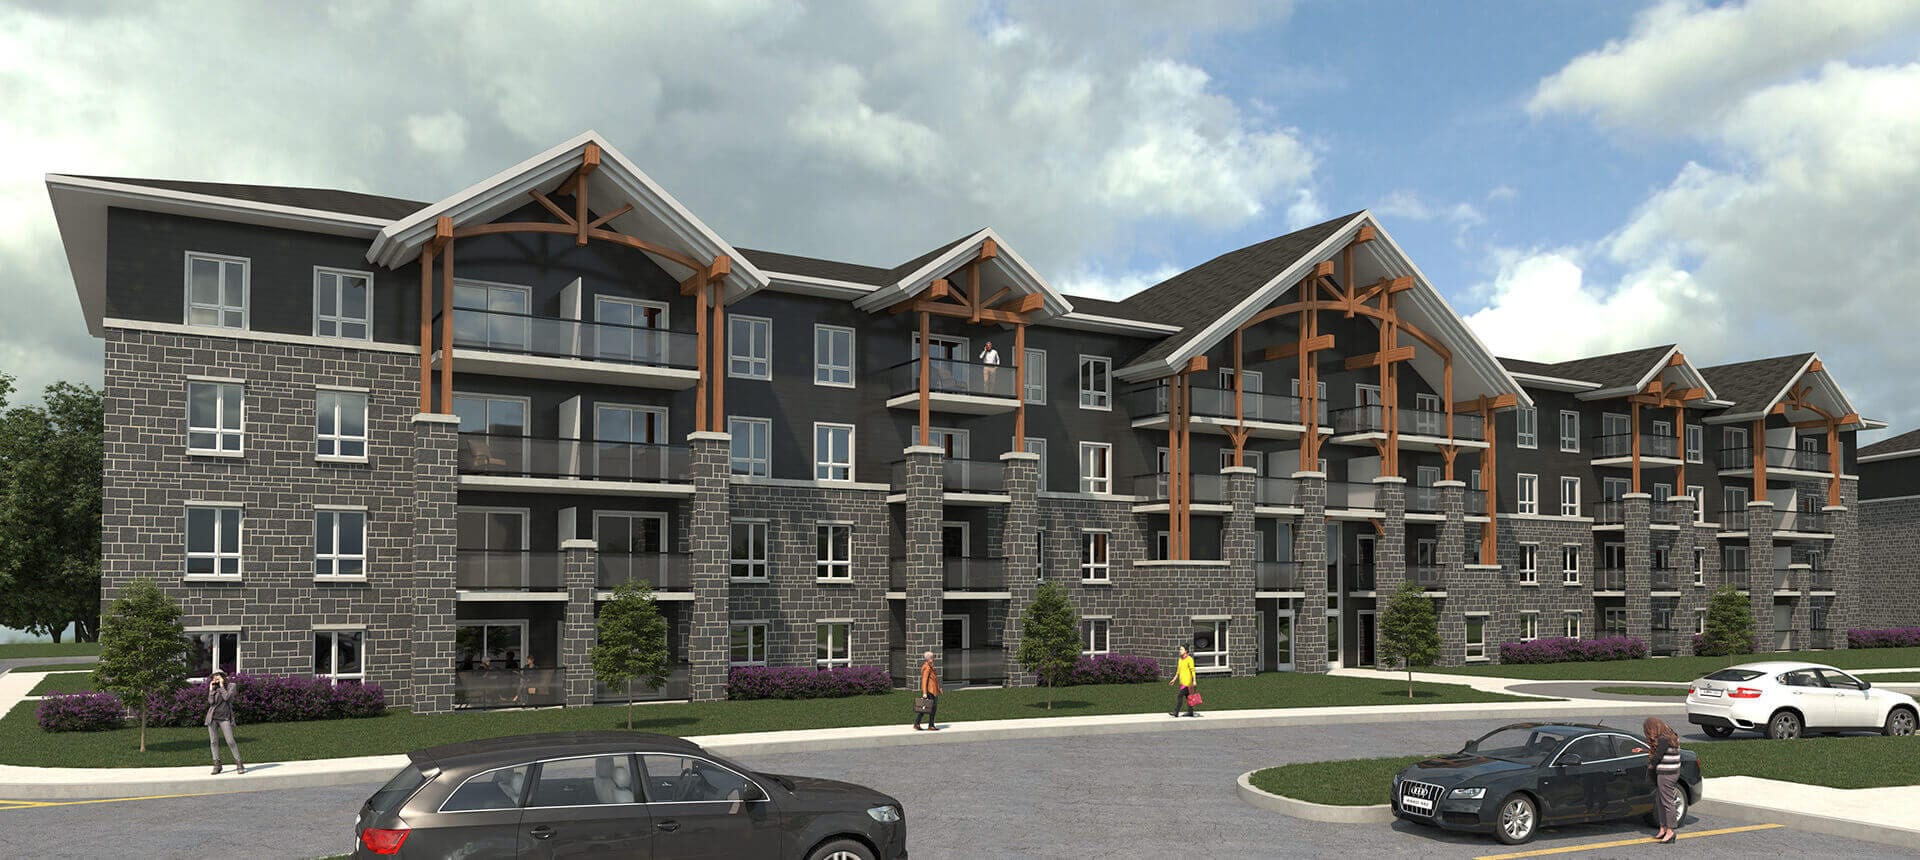 Front View and parking lot rendering of Talisman Place in Gravenhurst, Ontario